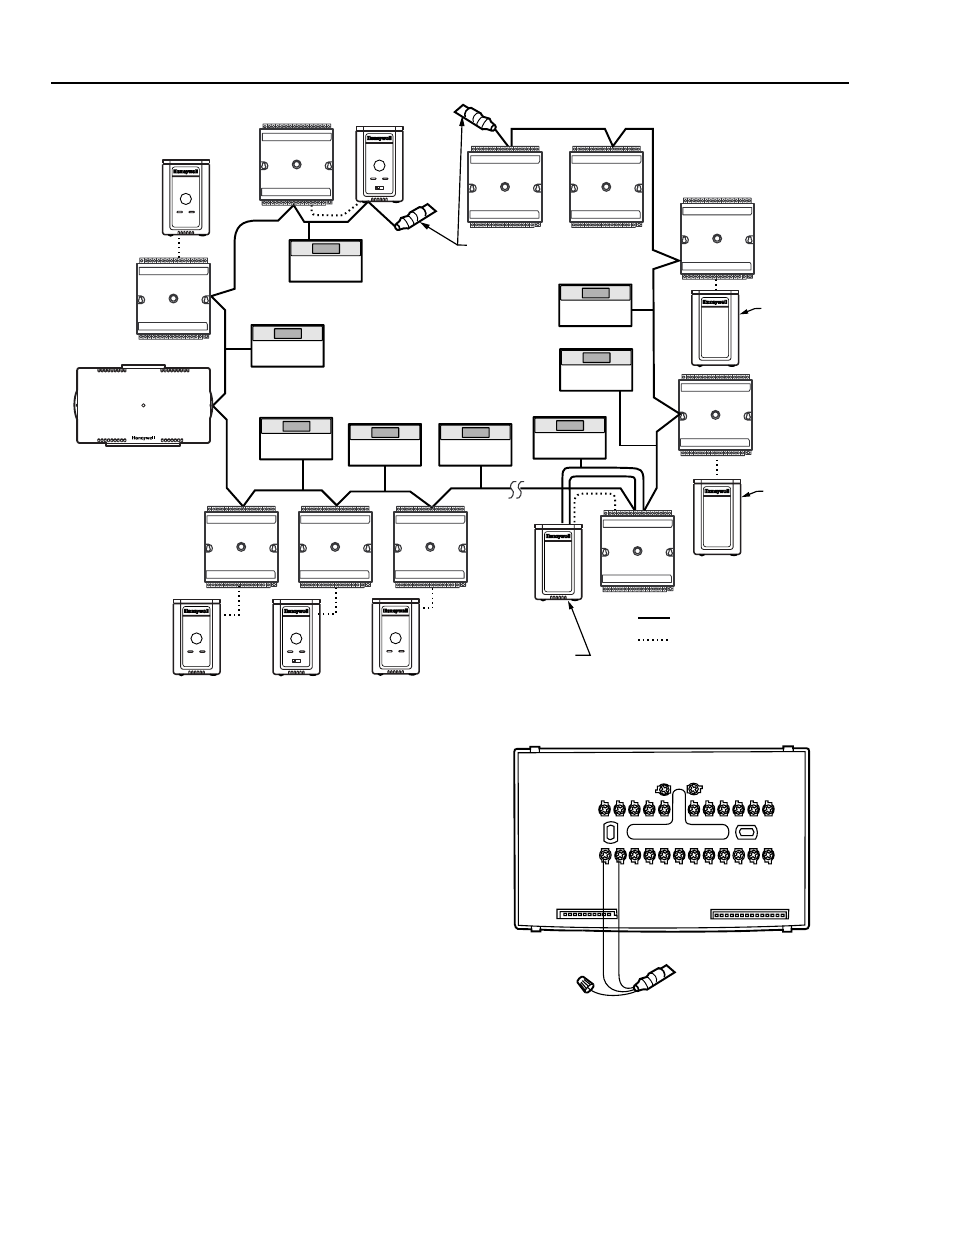 cable termination  singly terminated network segment